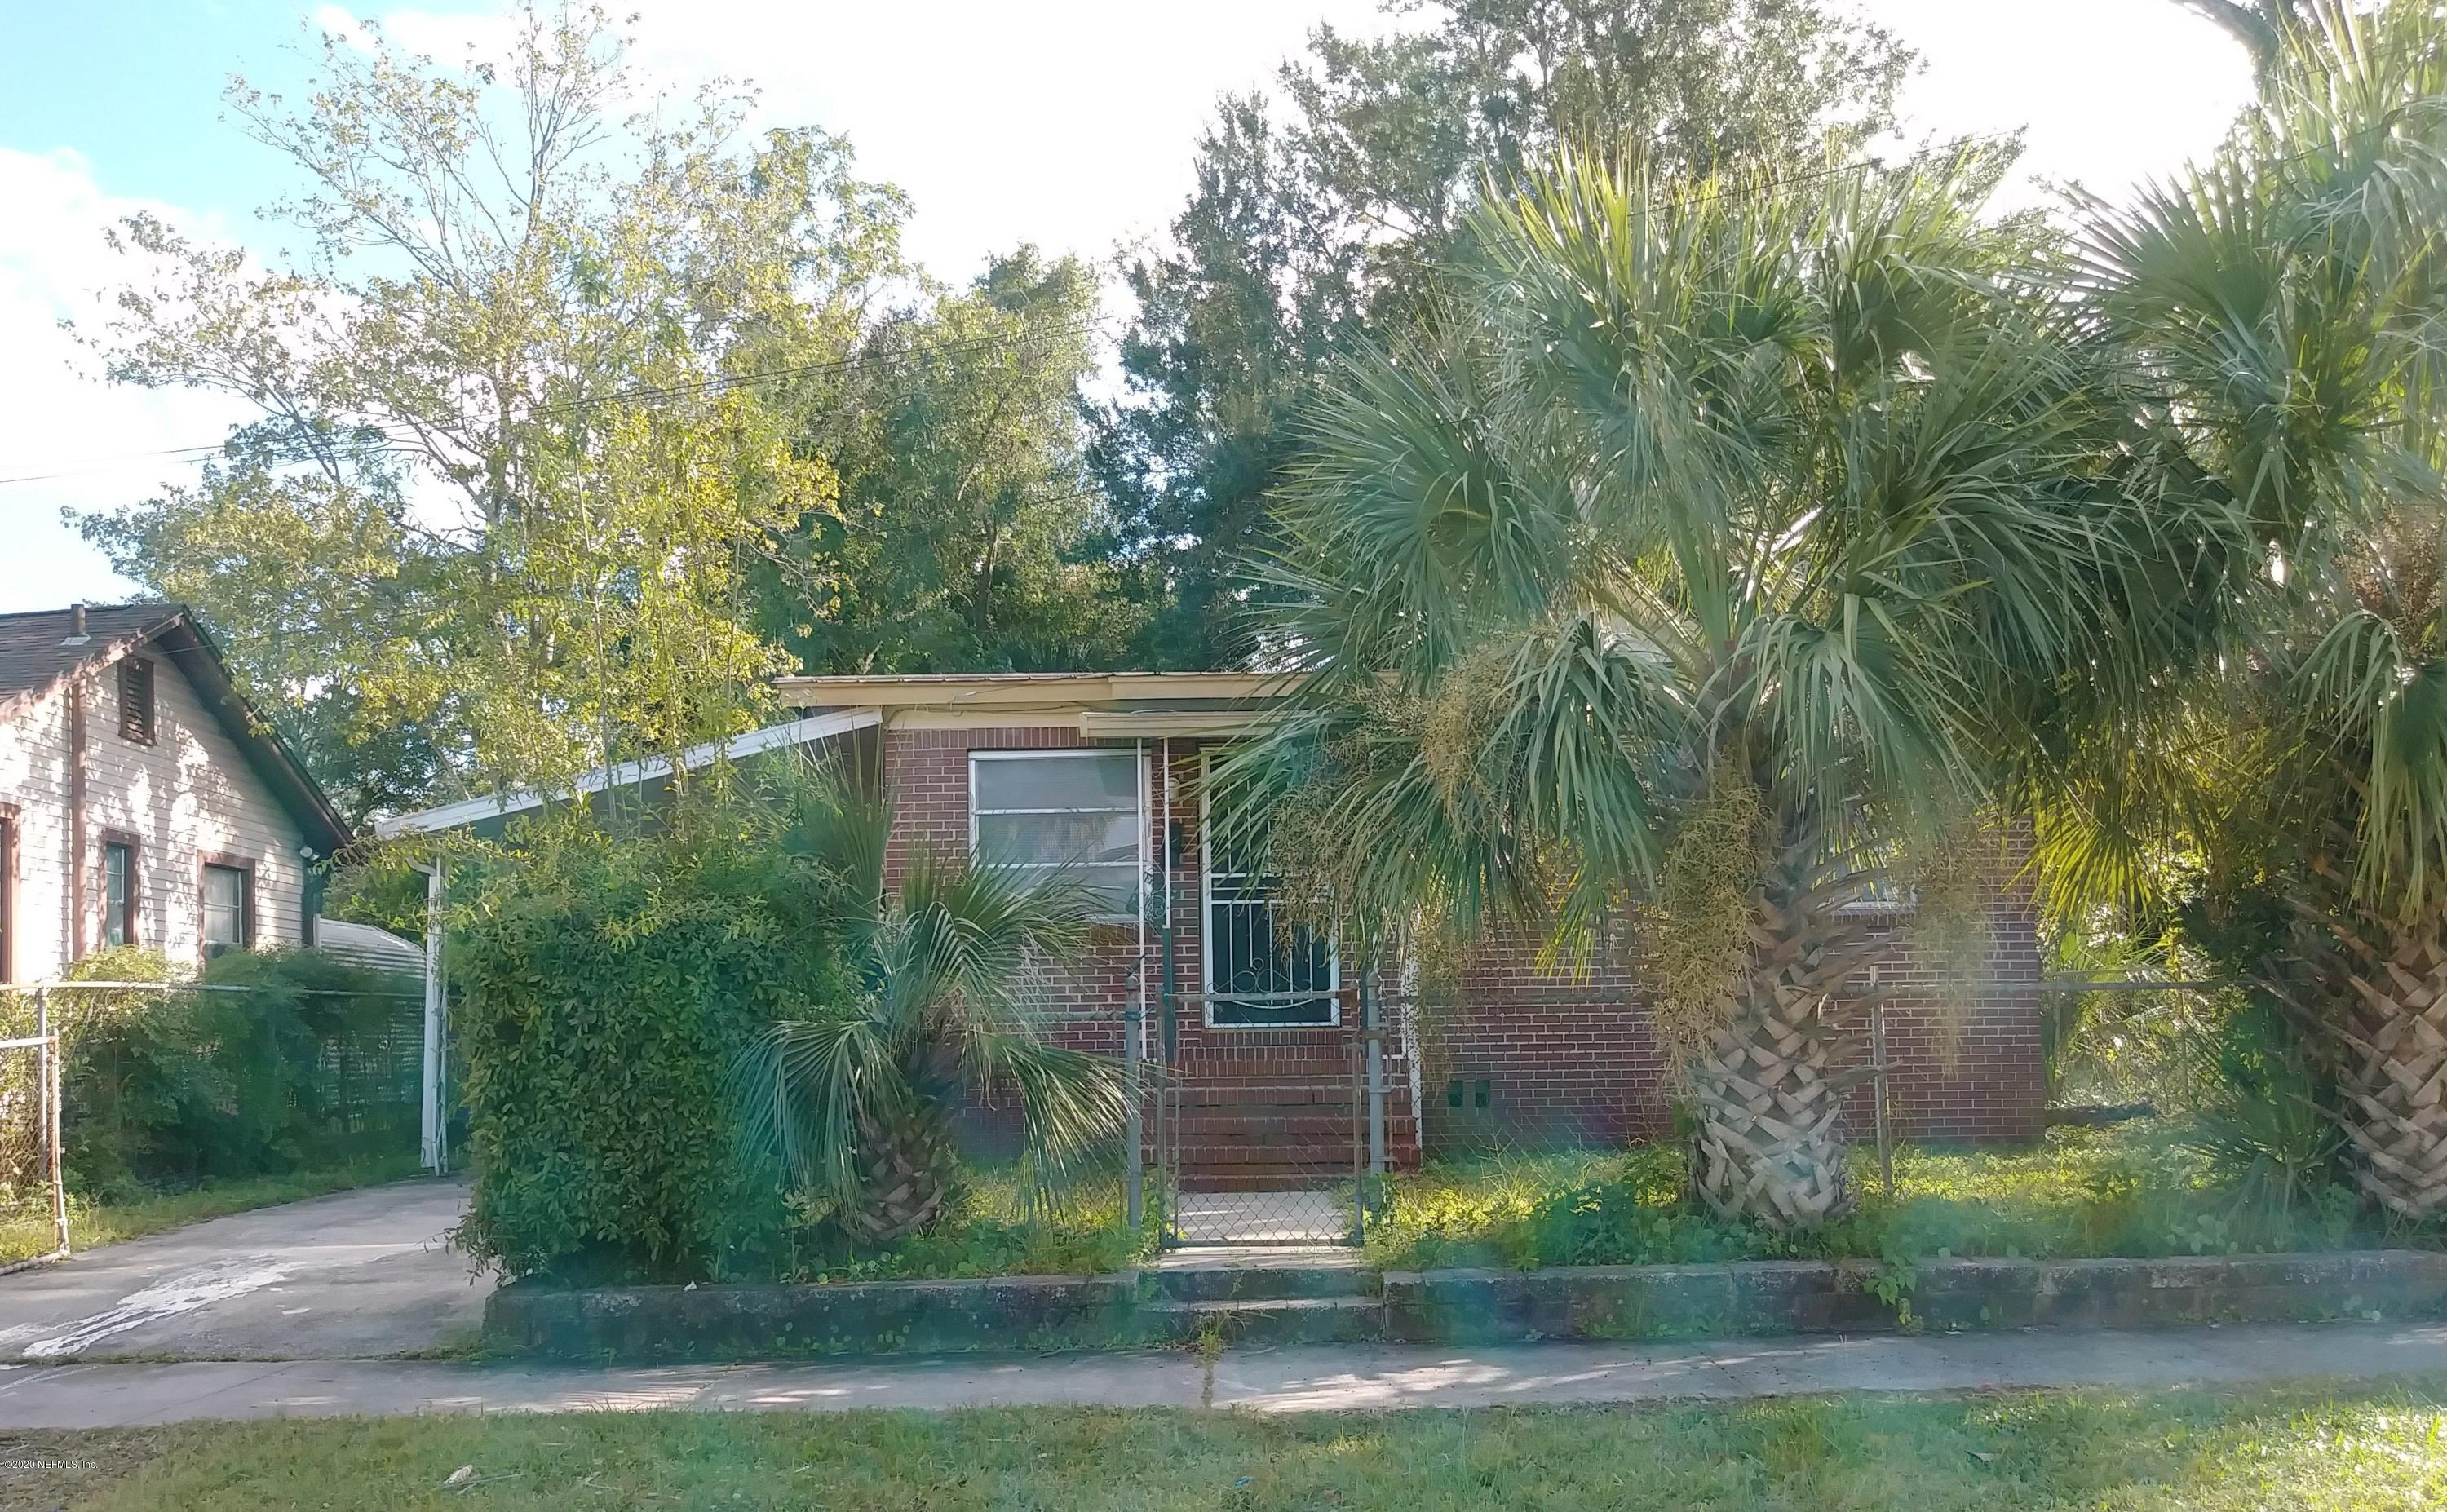 1546 36TH, JACKSONVILLE, FLORIDA 32209, 4 Bedrooms Bedrooms, ,1 BathroomBathrooms,Investment / MultiFamily,For sale,36TH,1060904